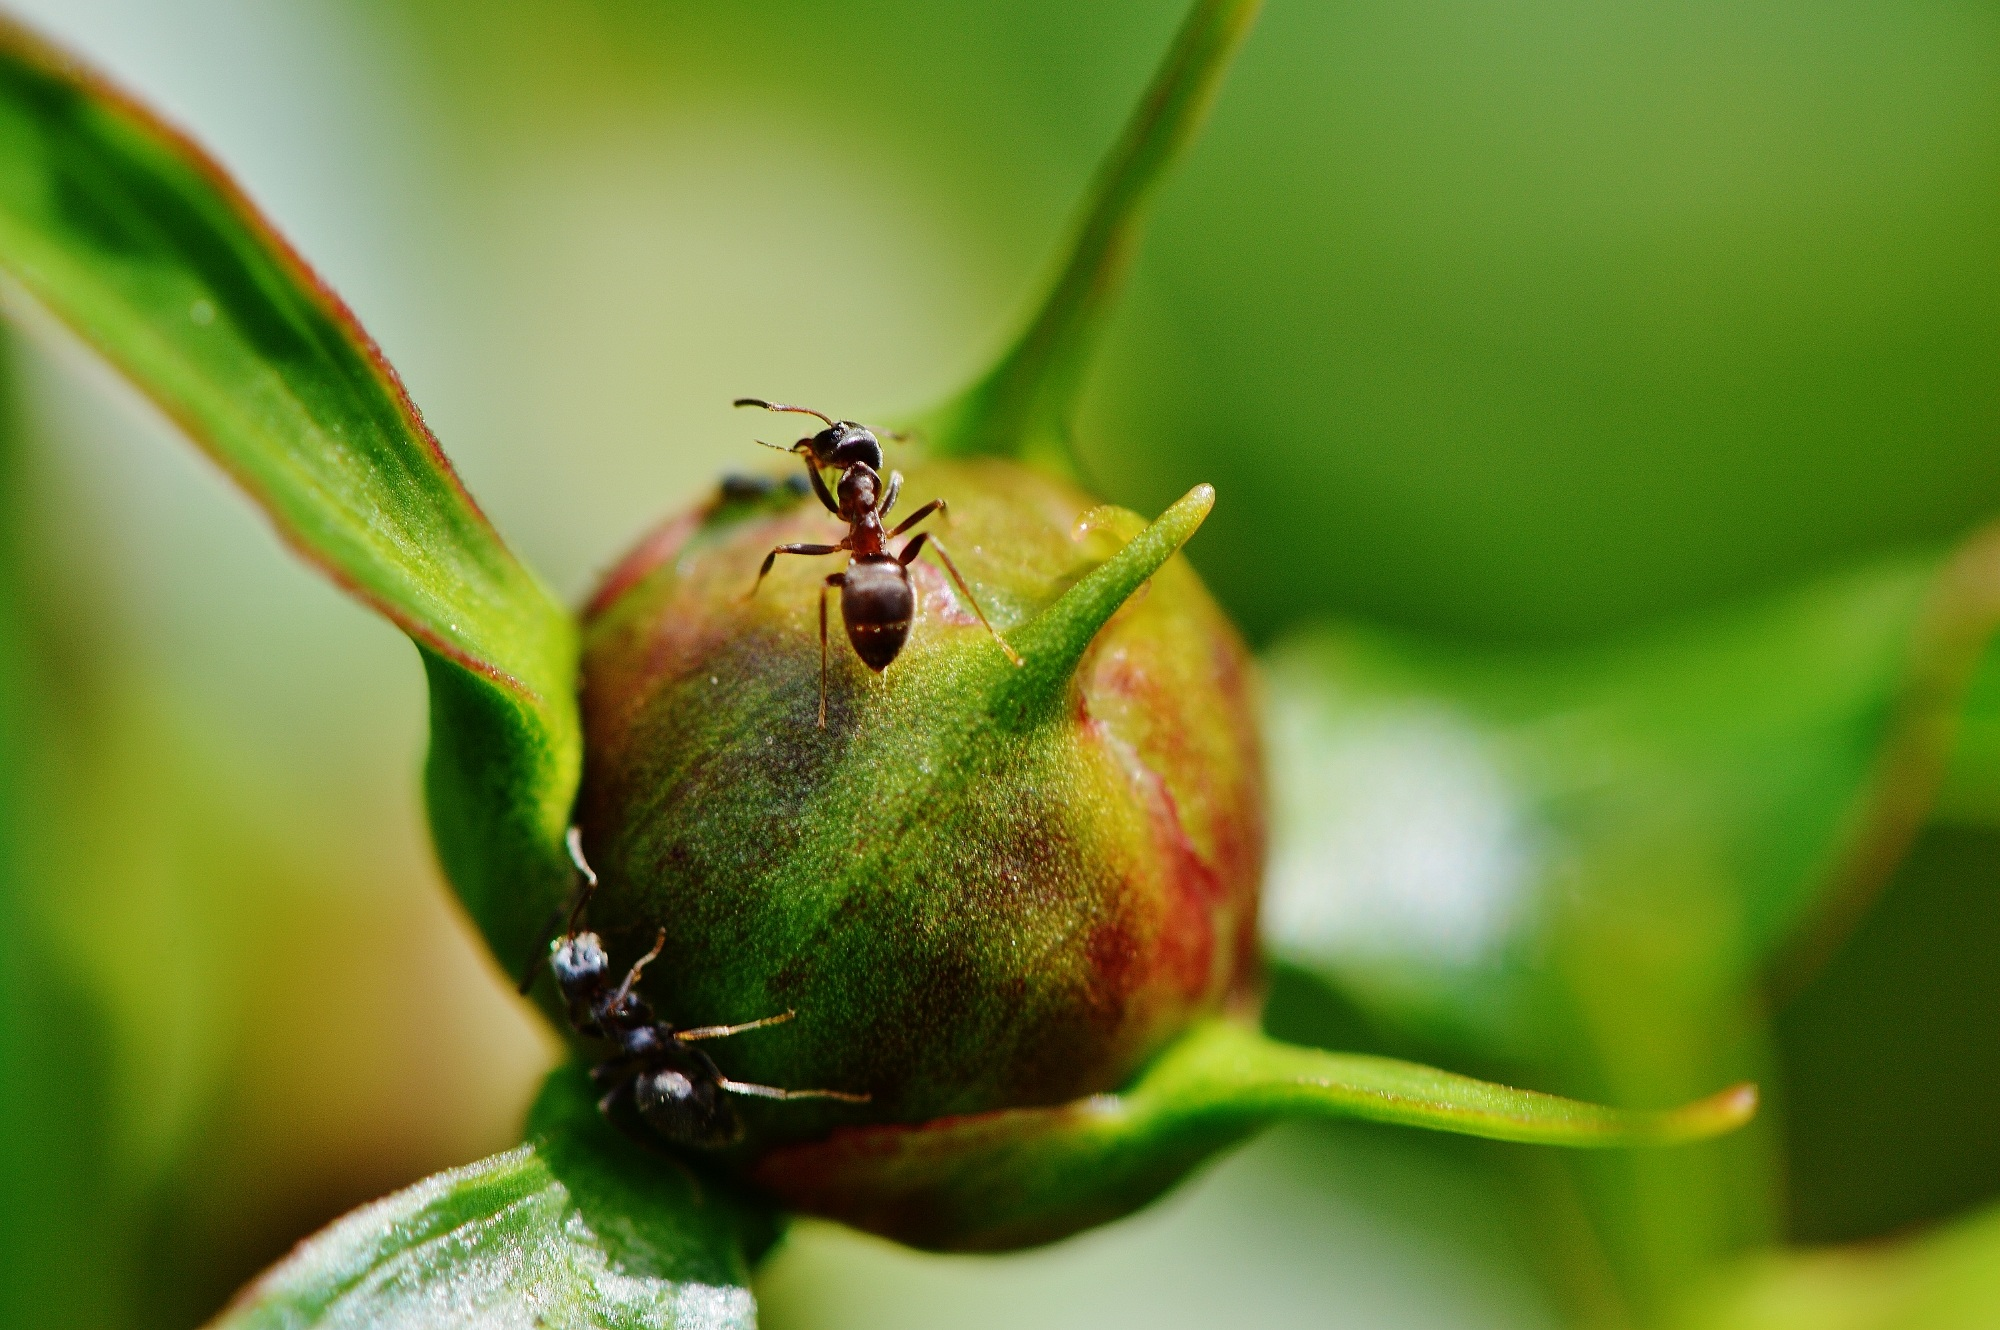 75244 download wallpaper Macro, Pion, Peony, Ants, Bud, Insects screensavers and pictures for free